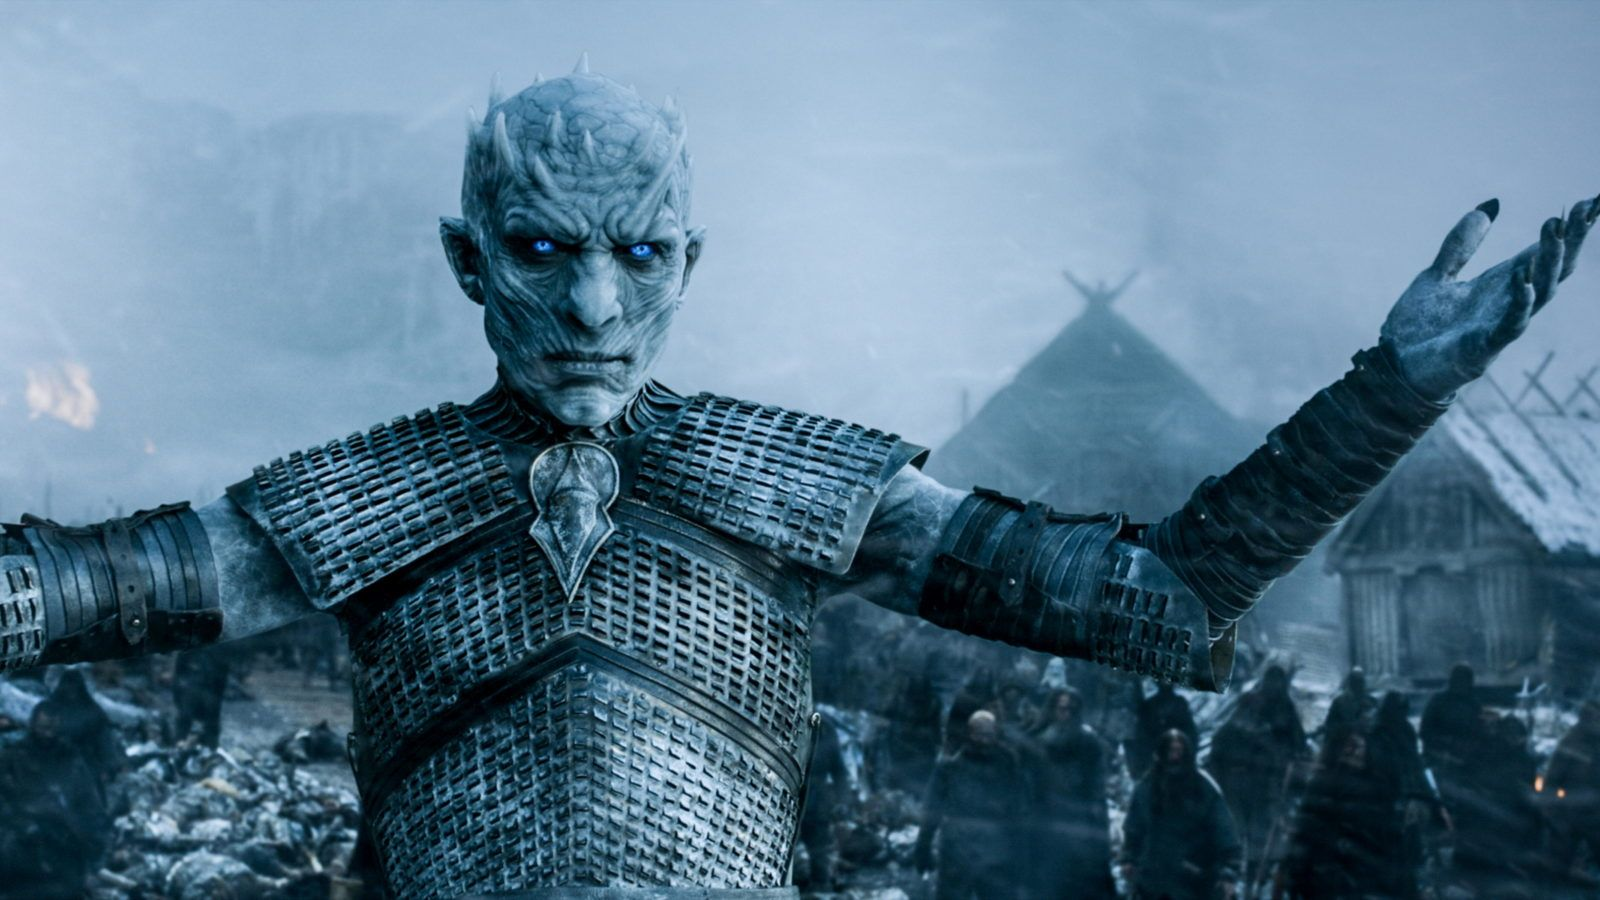 who is the jon snow of climate change?